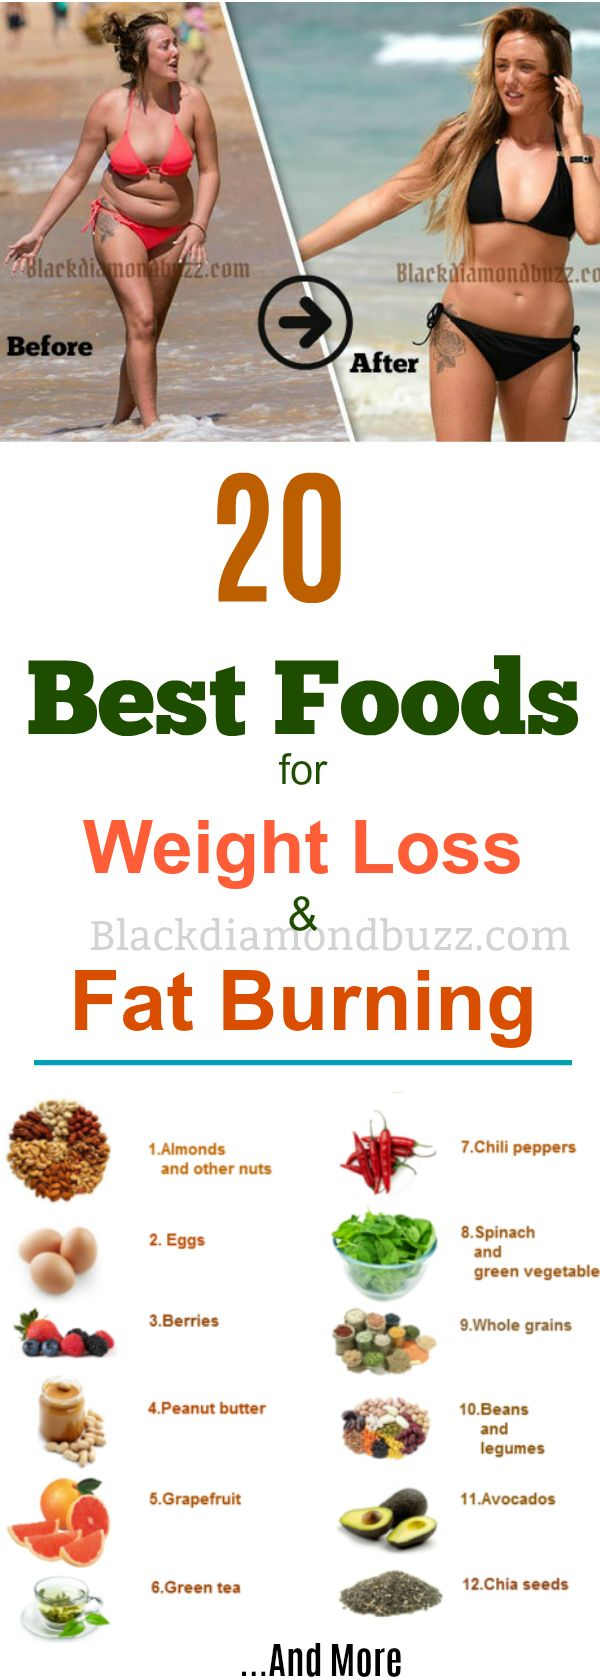 Best Foods for Weight Loss and metabolism boost